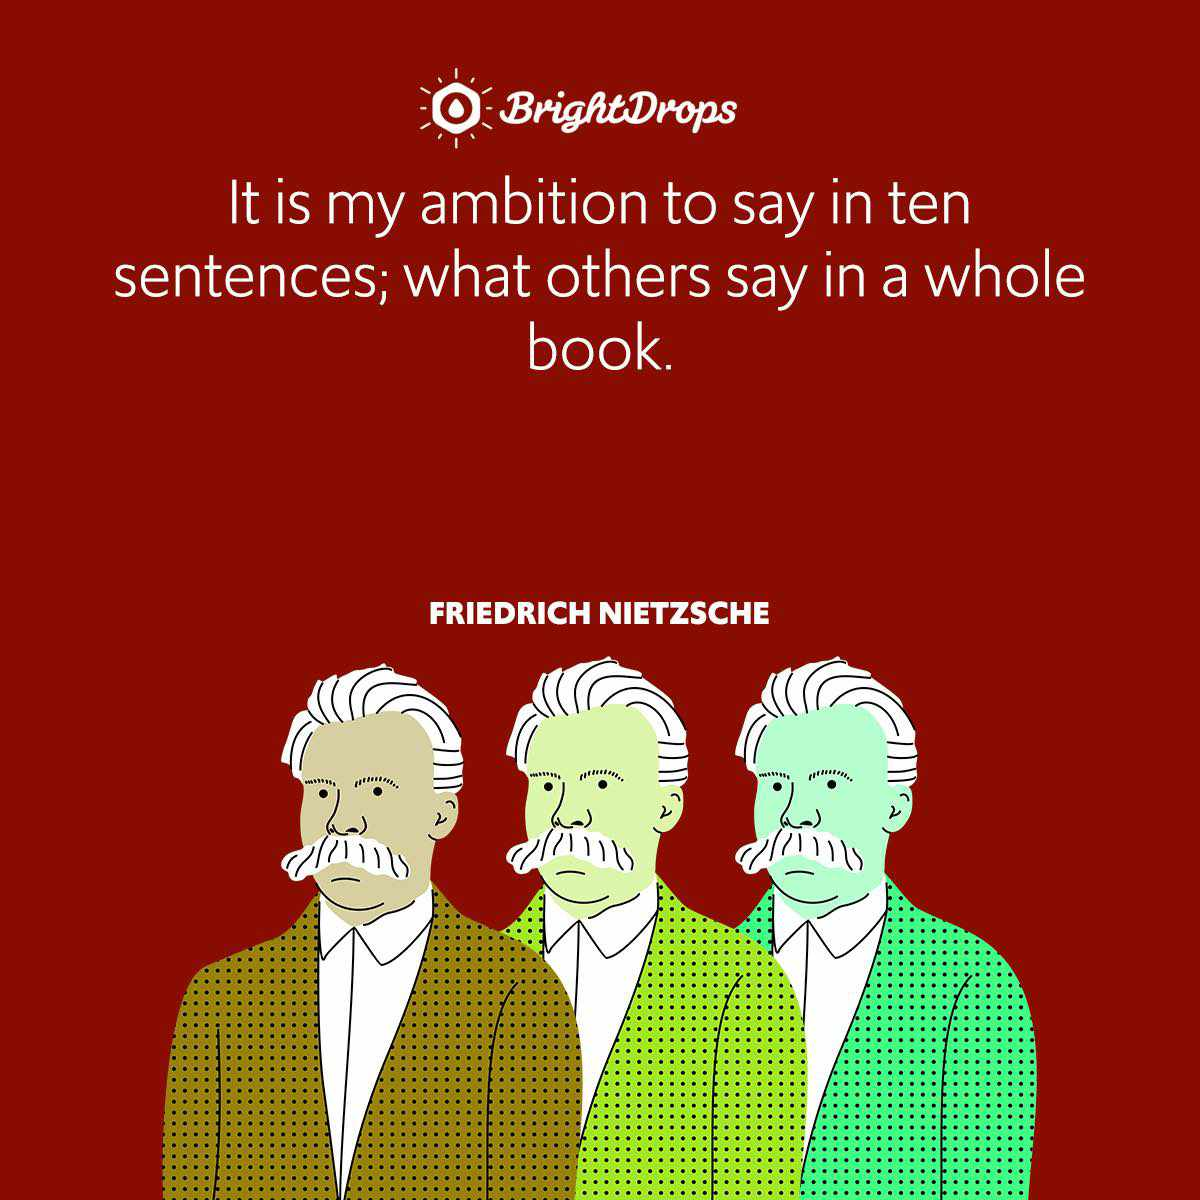 It is my ambition to say in ten sentences; what others say in a whole book.